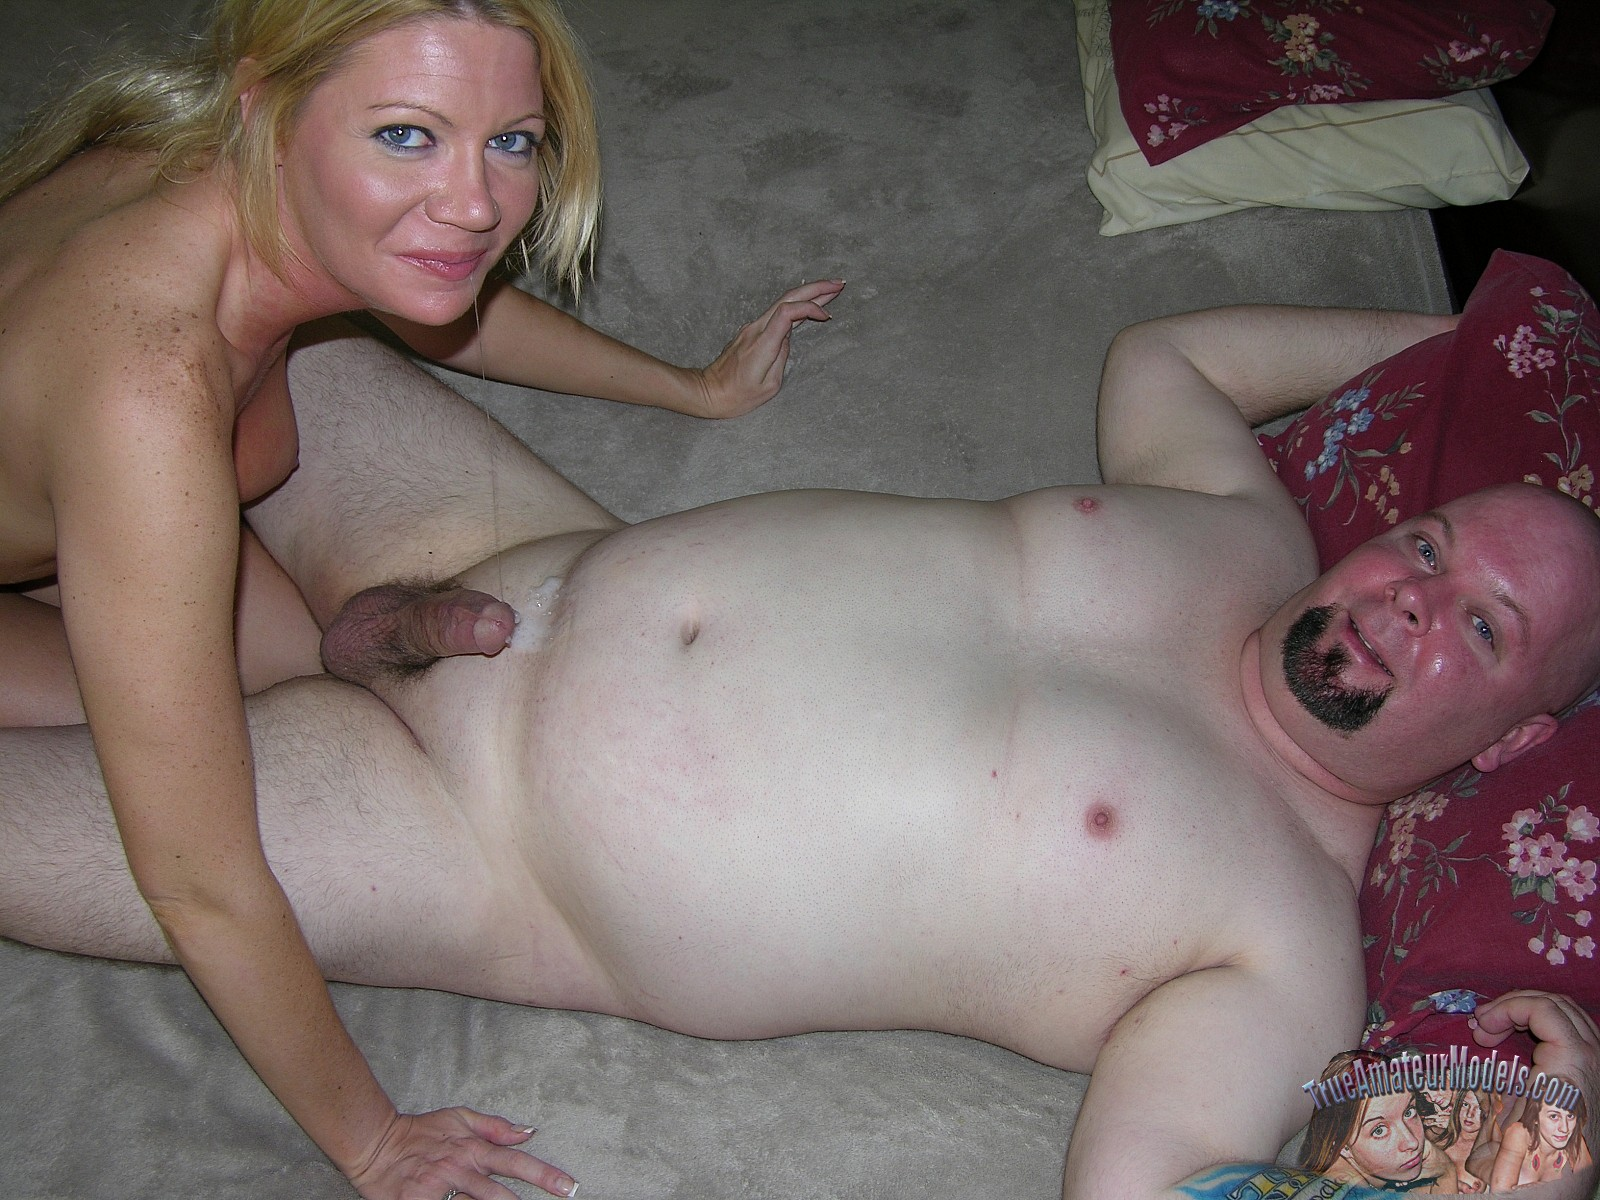 image Real milf blowjob domestic disturbance call